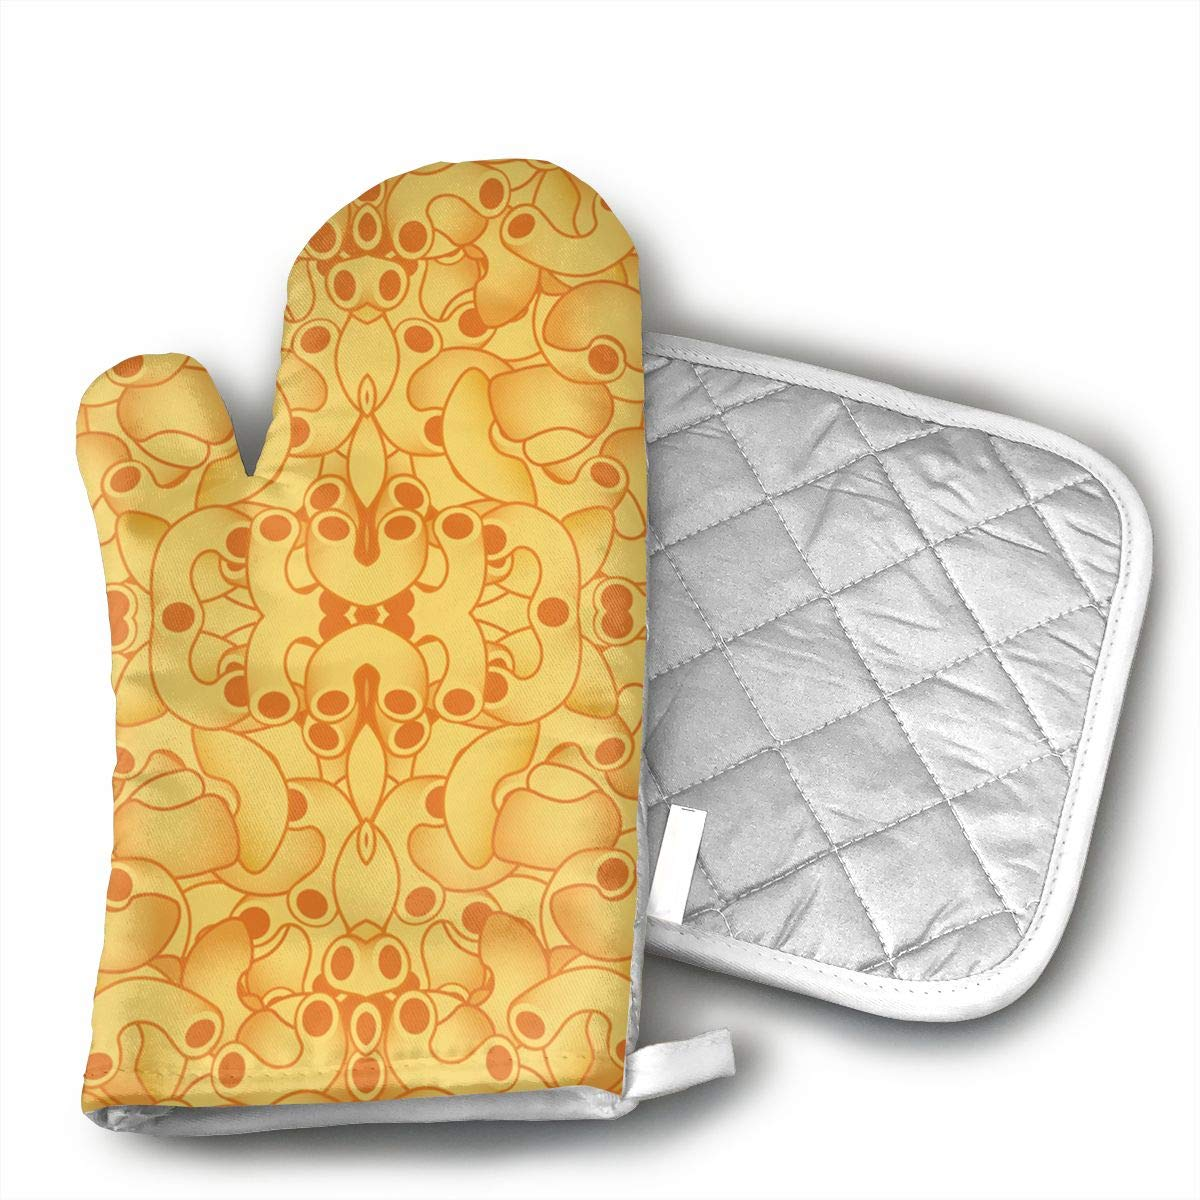 QEDGC Macaroni and Cheese Oven Mitts Cooking Gloves Heat Resistant, for Kitchen Oven BBQ Grill and Fire Pits for Cooking Baking,